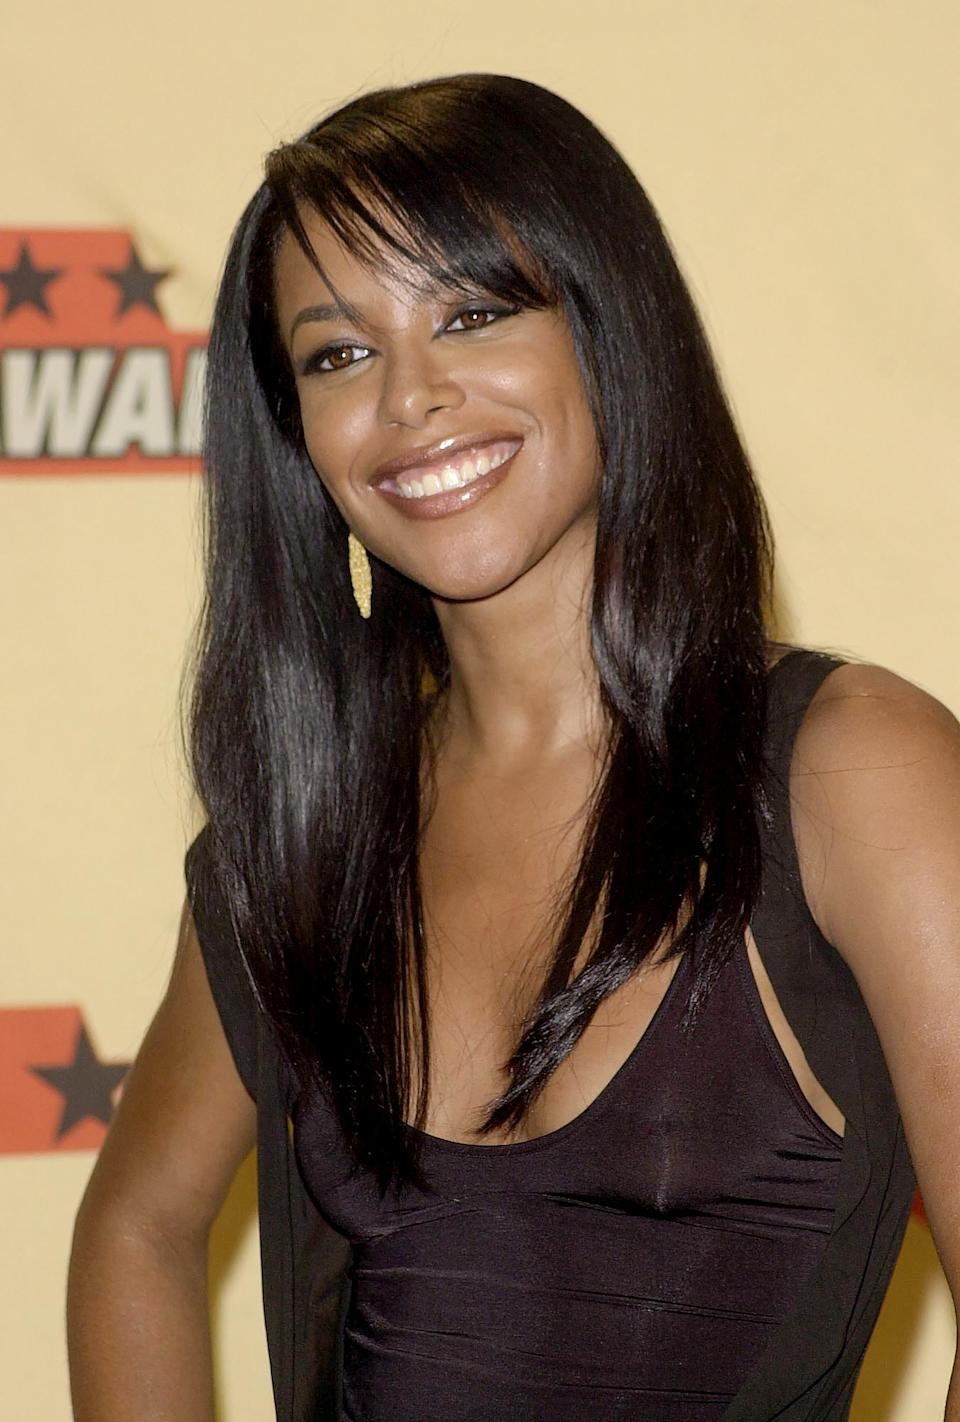 Aaliyah in June 2001 at the 2001 MTV Movie awards in Los Angeles.